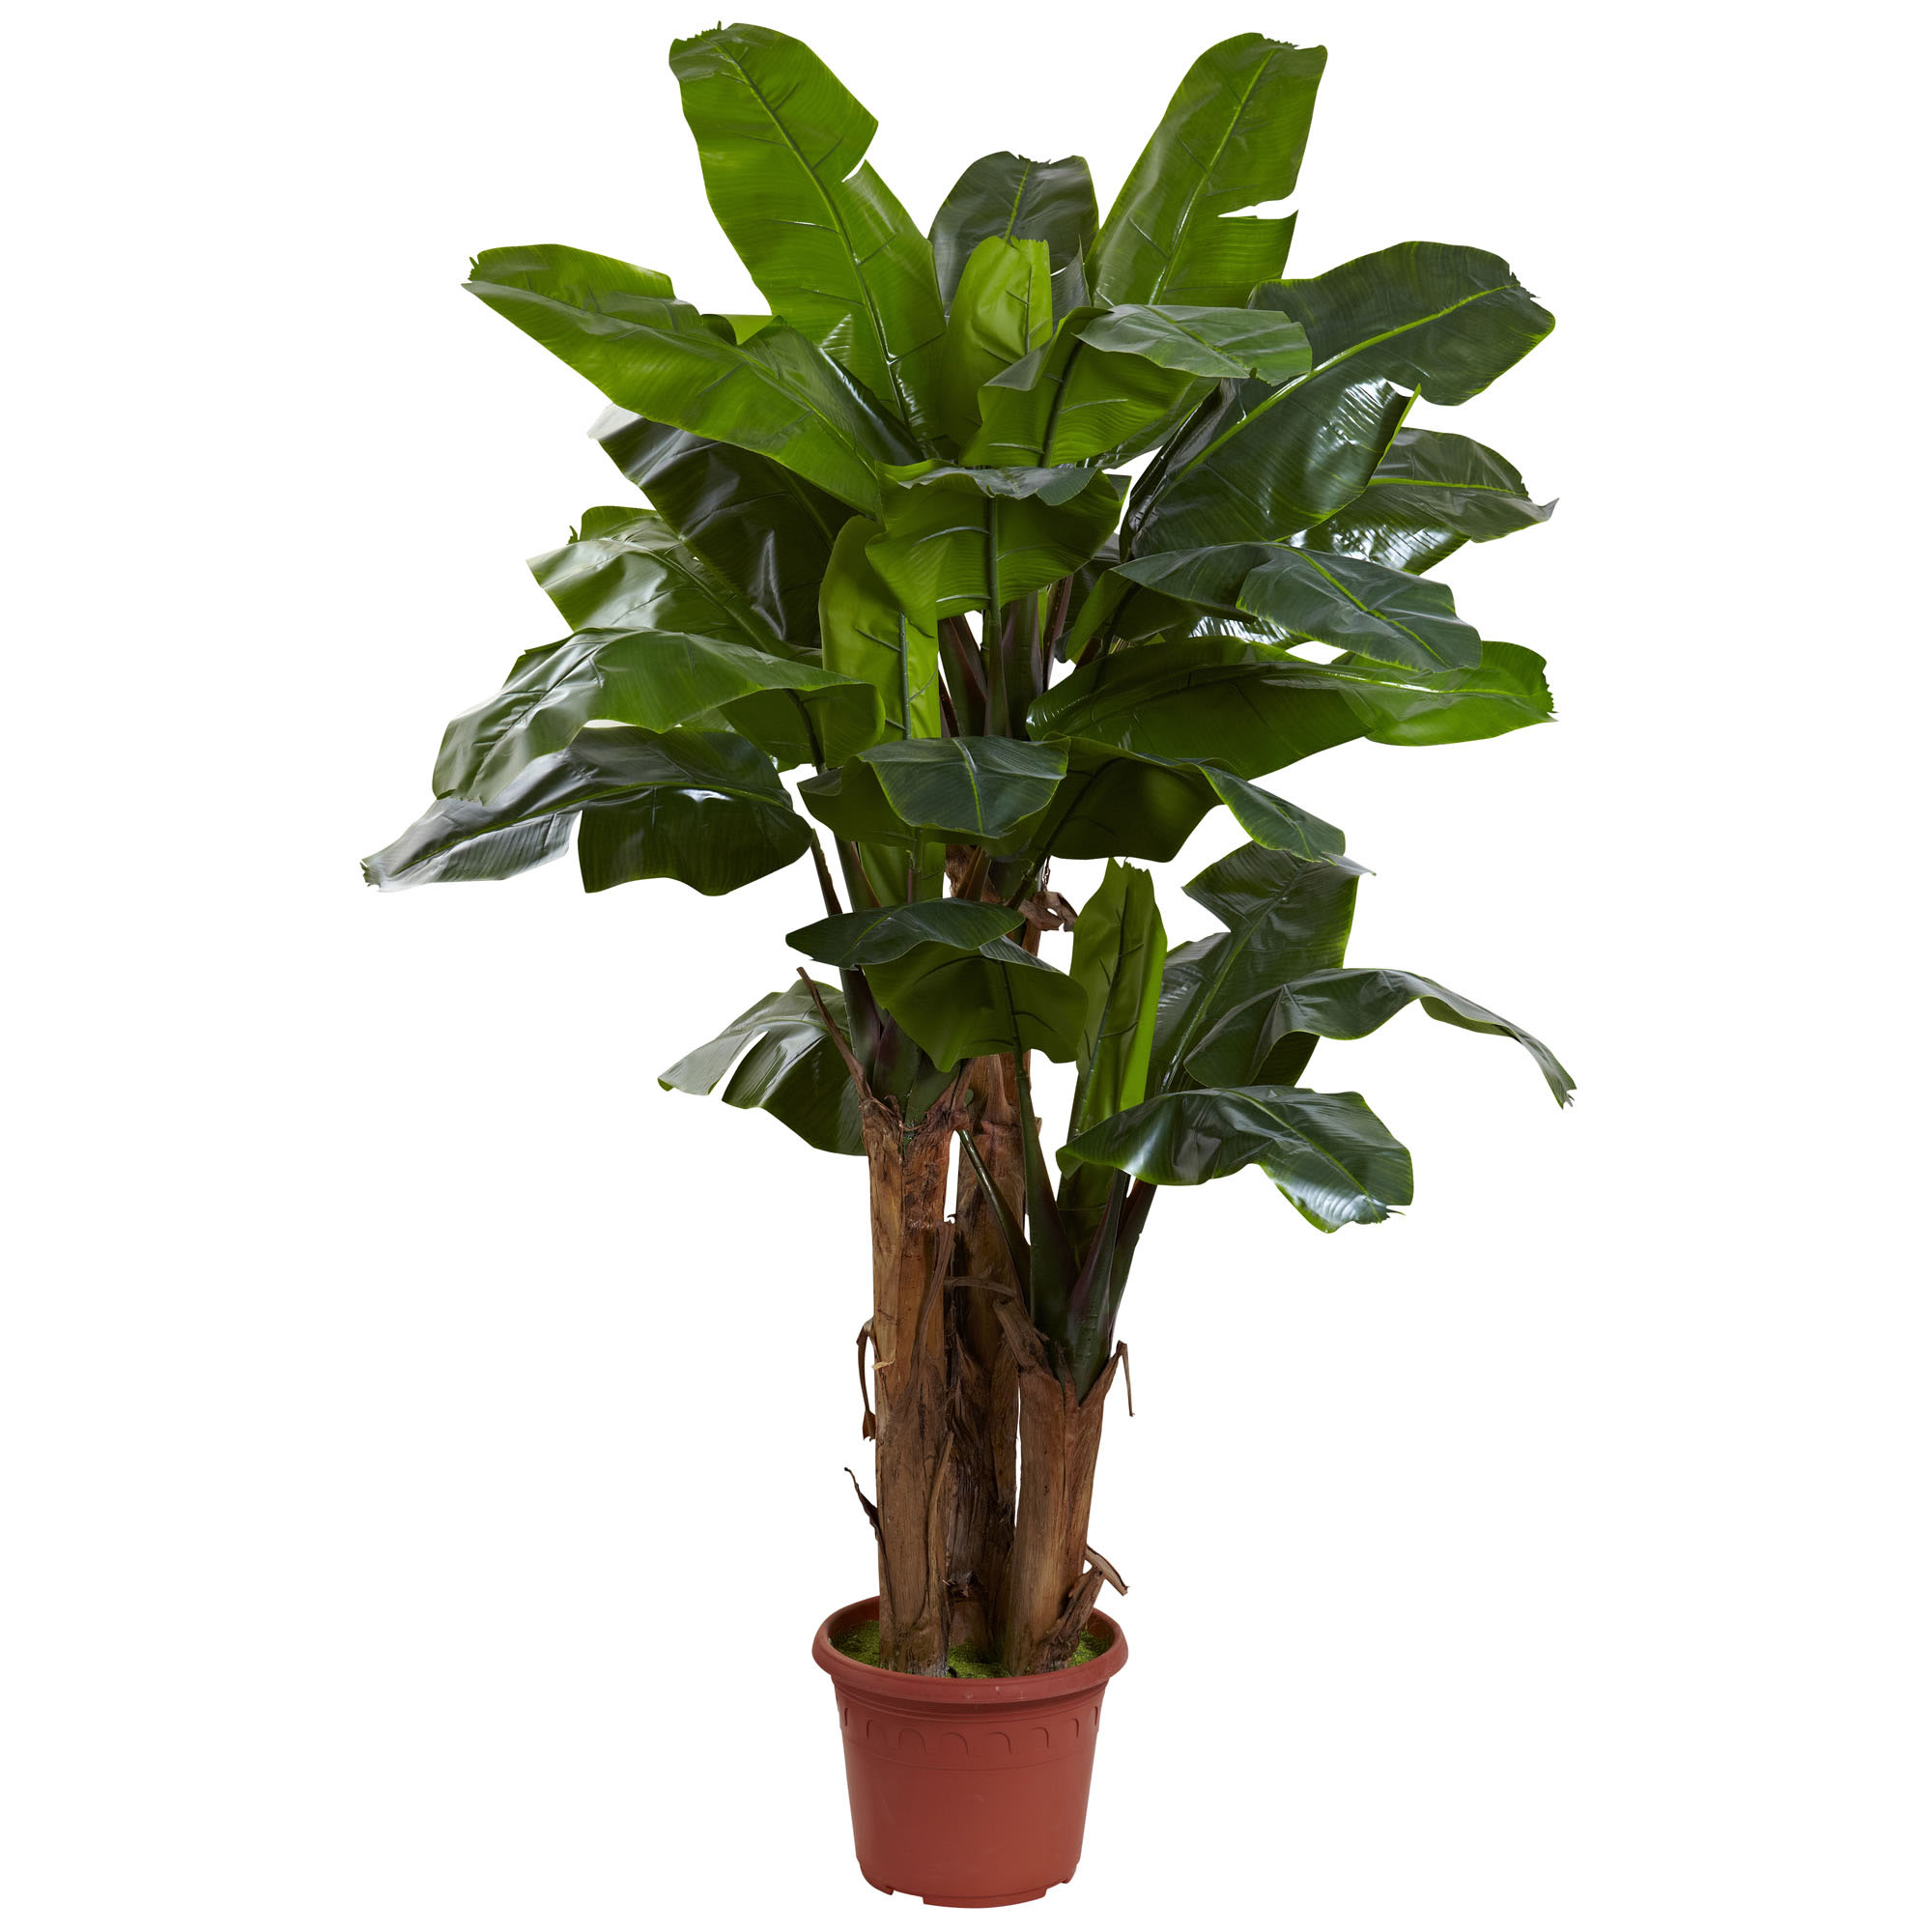 Splendid Giant-Outdoor-Triple-Stalk-Banana-Tree-Limited-Uv Product Picture 325